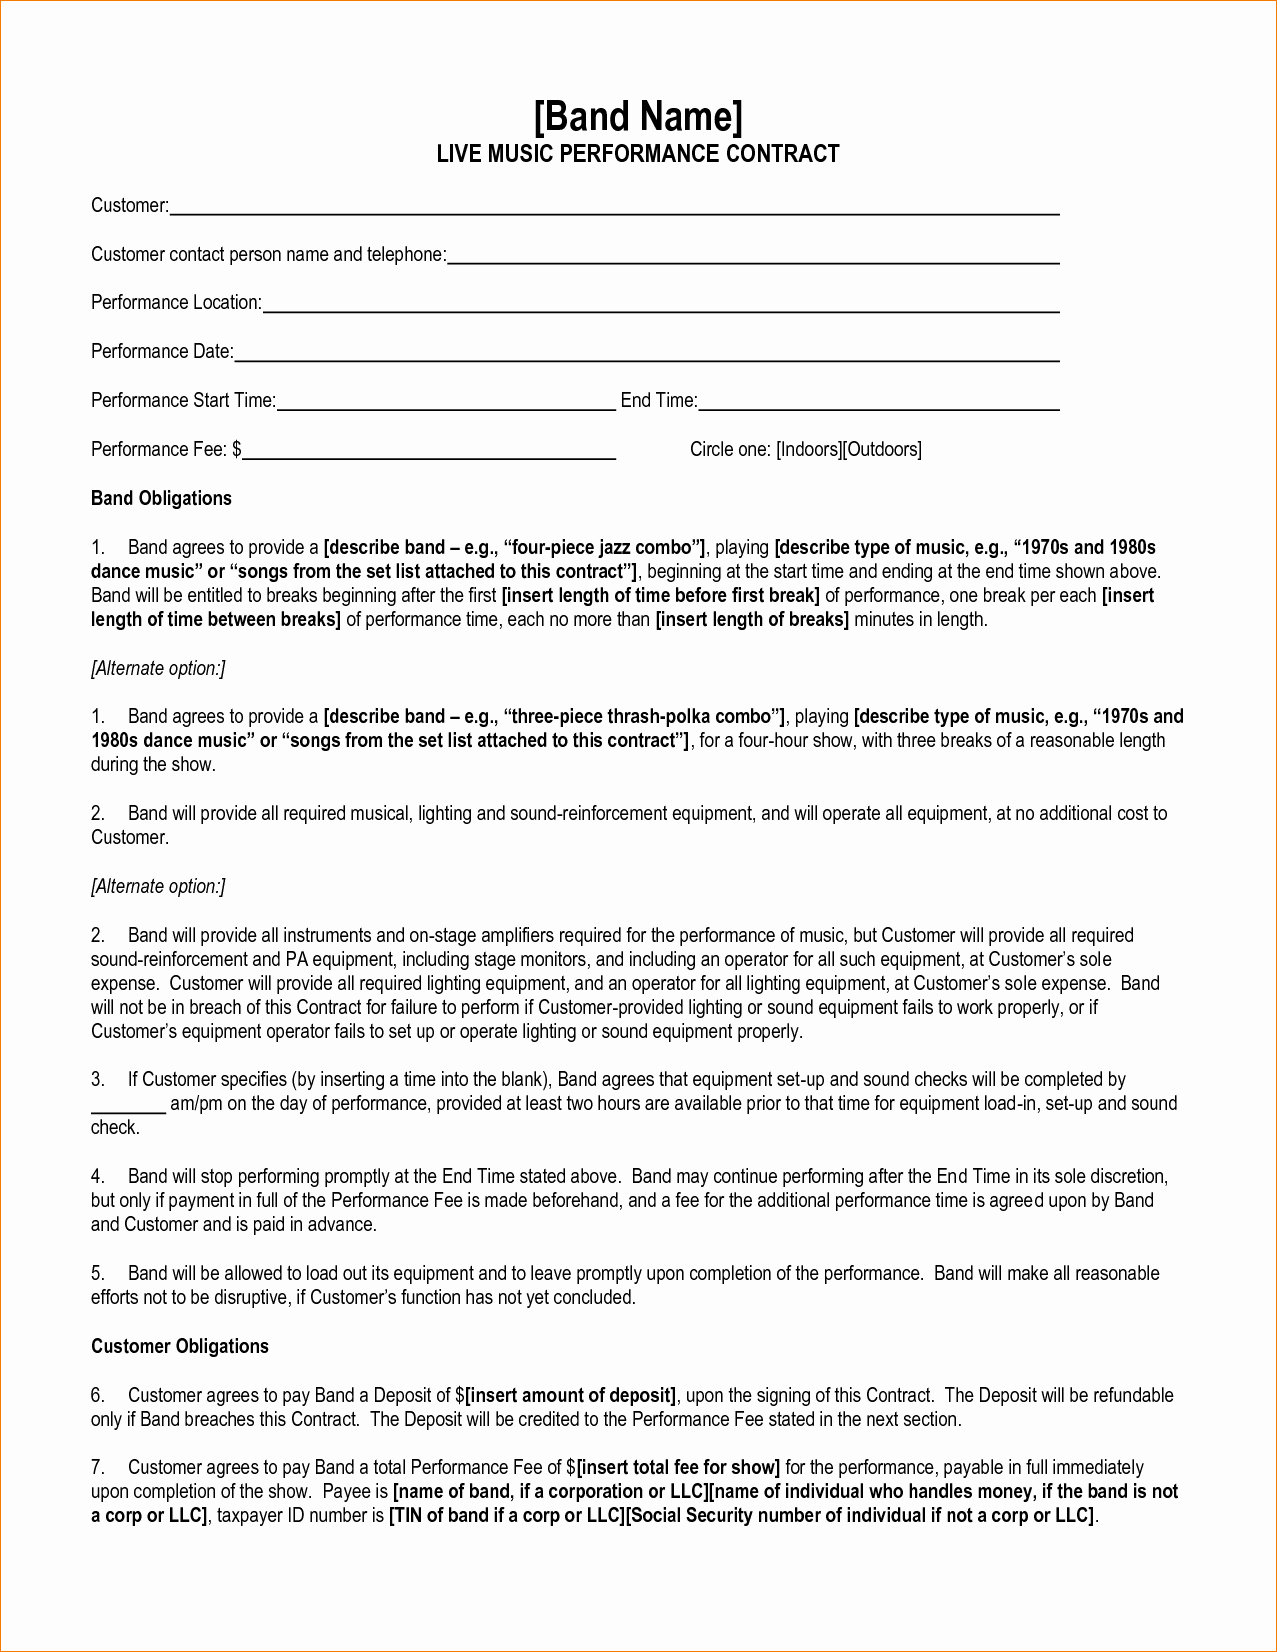 Music Performance Contract Template Luxury Contract Free Performance Contract Template Performance